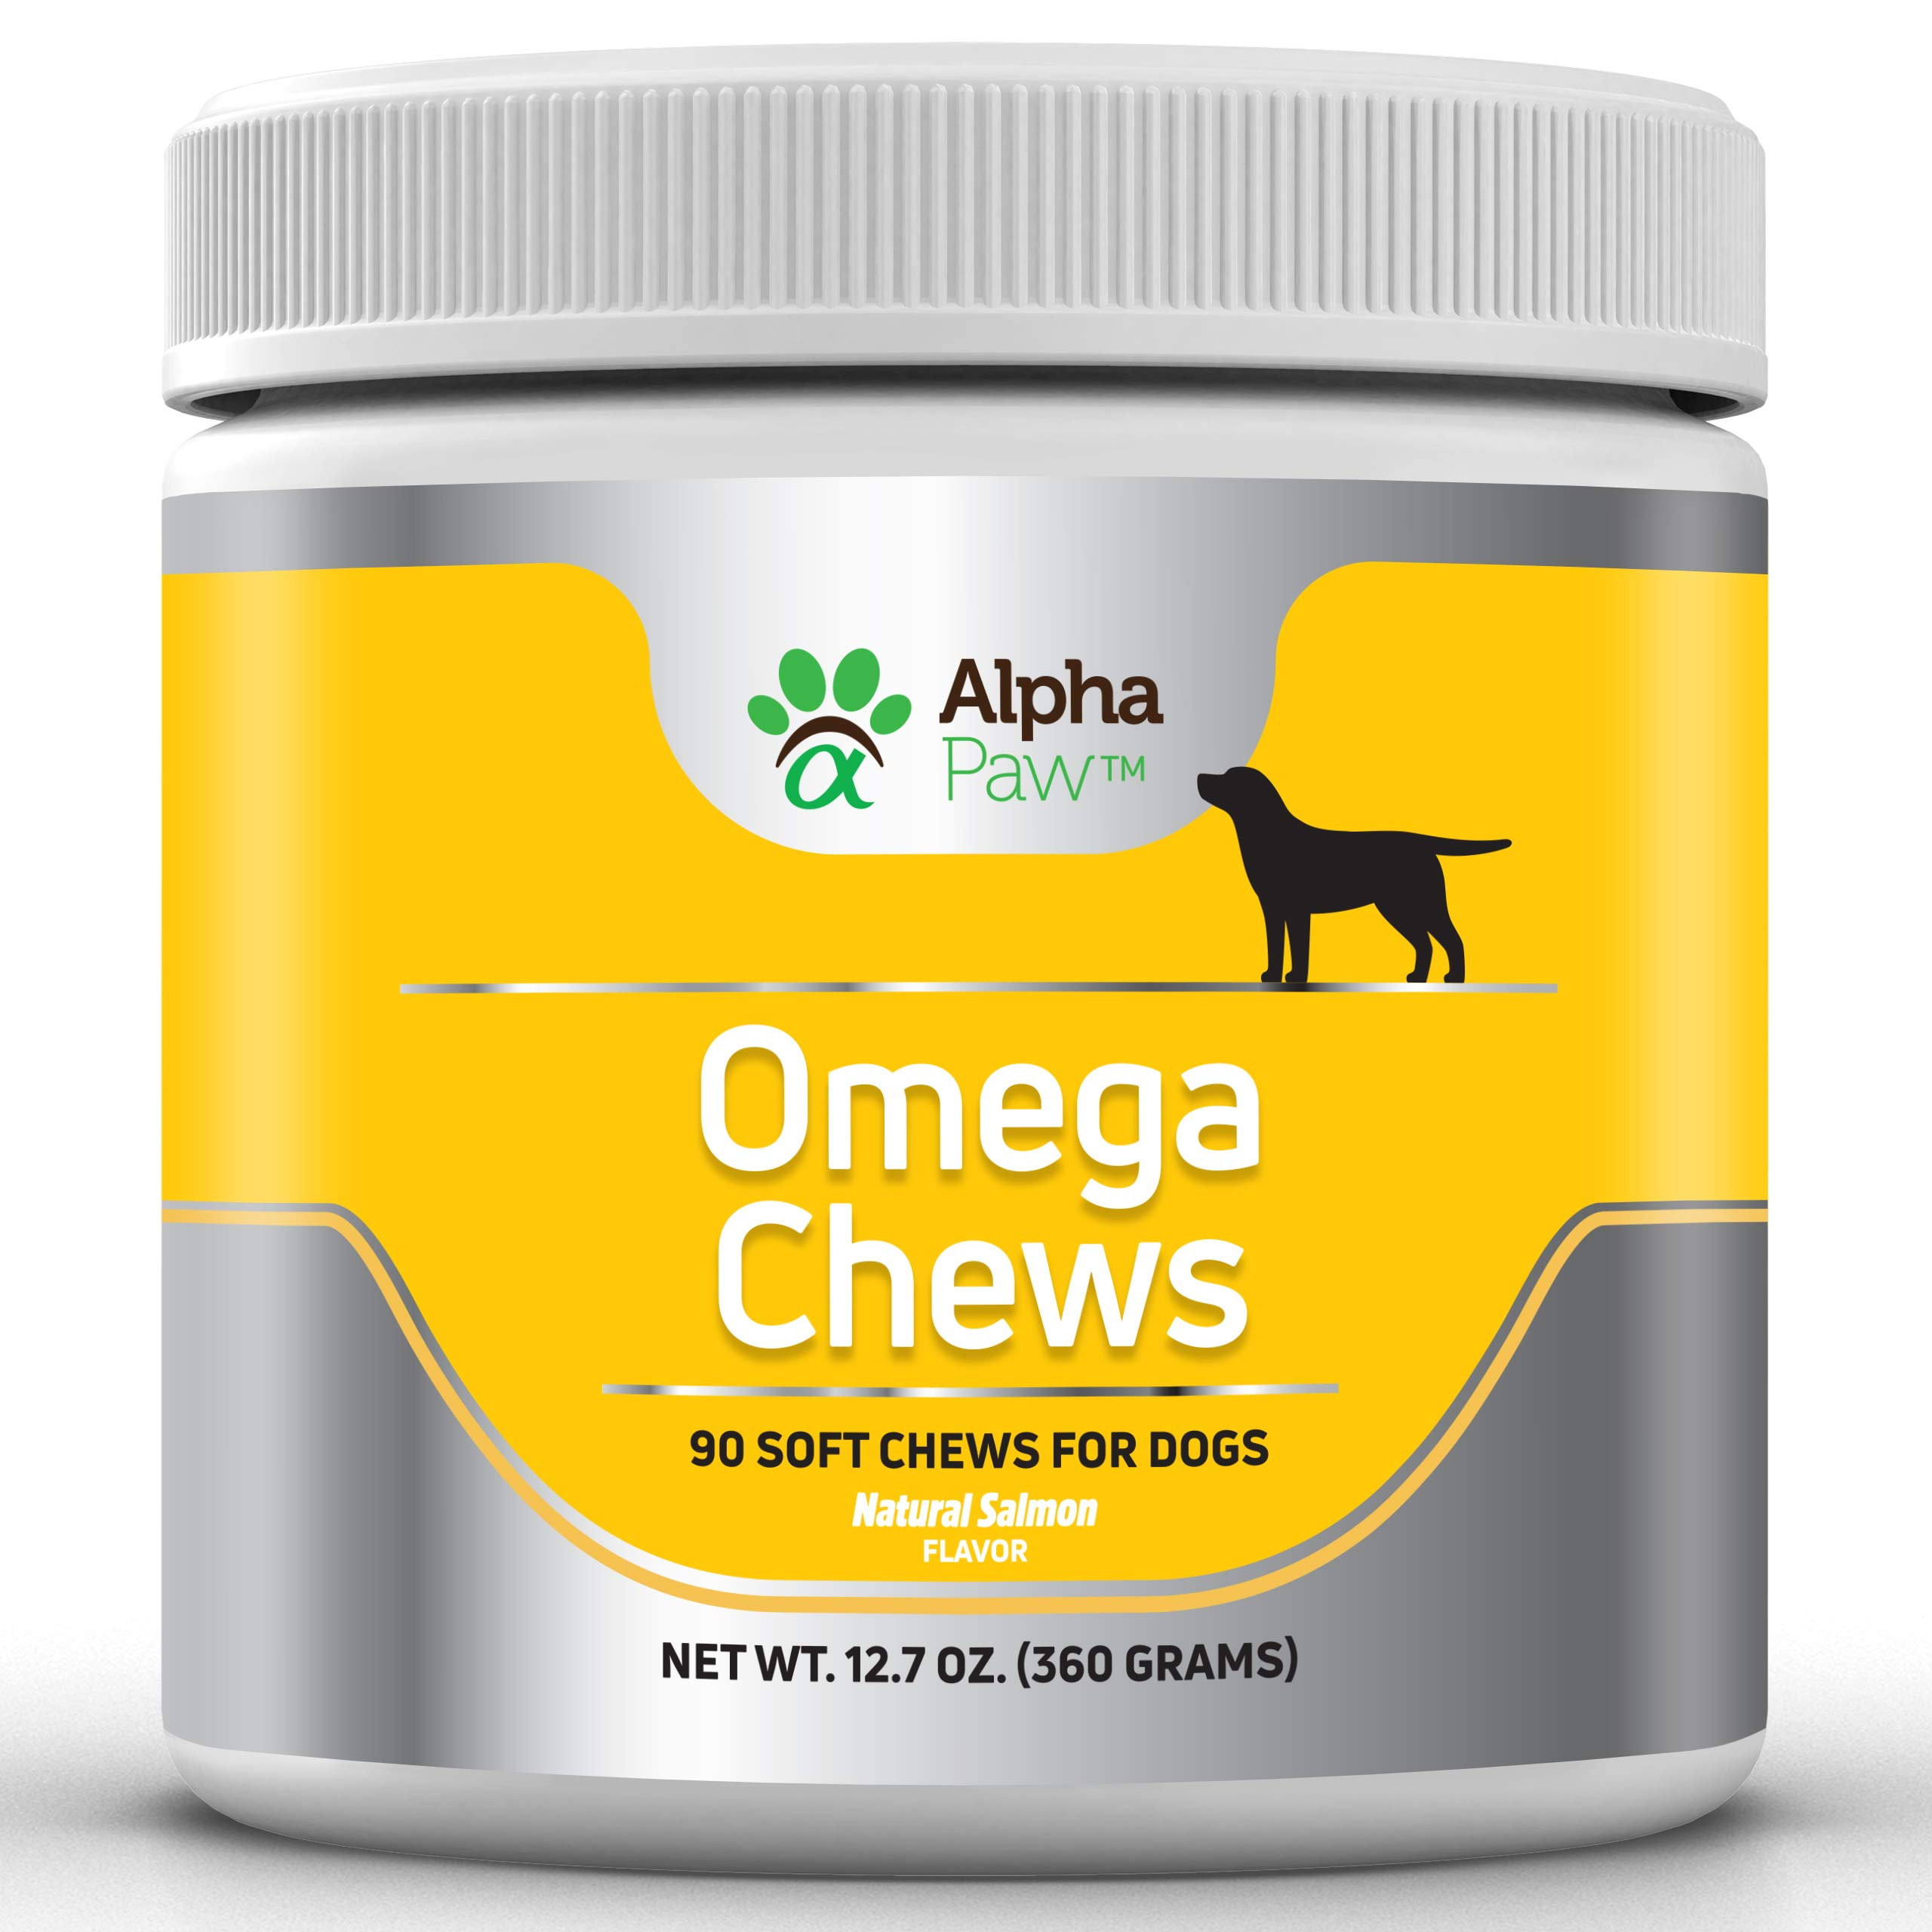 Alpha Paw Omega 3 6 9 for Dogs - Dog Omega 3 Supplement with Salmon, Salmon Oil, DHA, Flaxseed, Biotin - Dog Skin and Coat Supplements- Allergy, Immune, Hip and Joint - 360 grams Approx. 90 Soft Chews by Alpha Paw